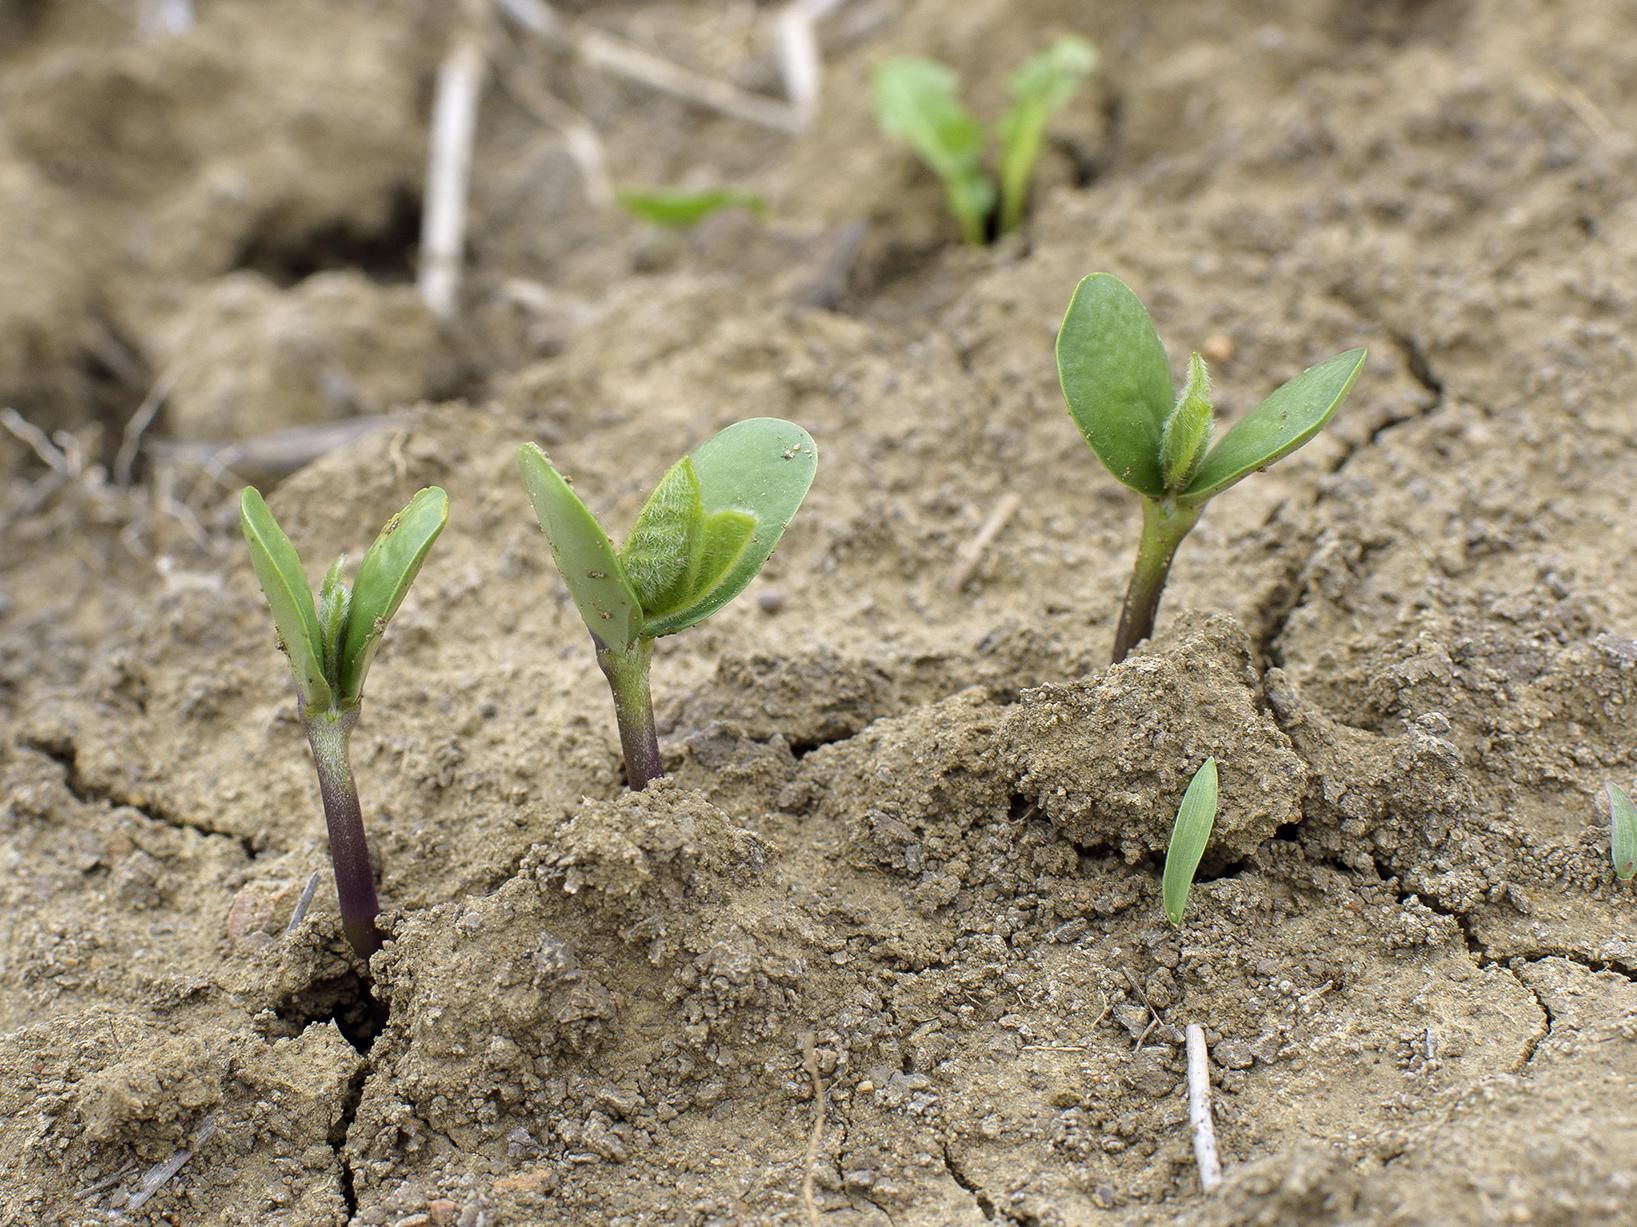 Growers planted the majority of Mississippi's soybean crop well ahead of normal this year, thanks to favorable April weather. These recently emerged soybean plants on Mississippi State University's Rodney Foil Plant Science Research Center were growing on May 3, 2017. (Photo by MSU Extension Service/Kevin Hudson)